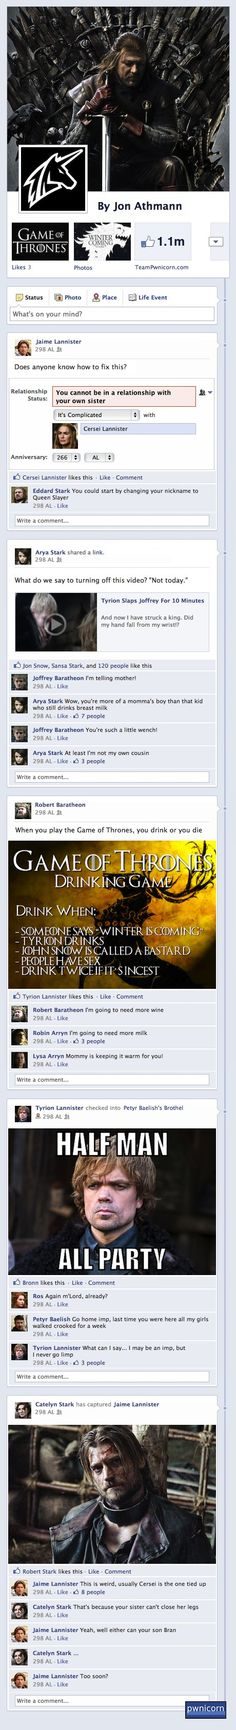 Game of Thrones on Facebook